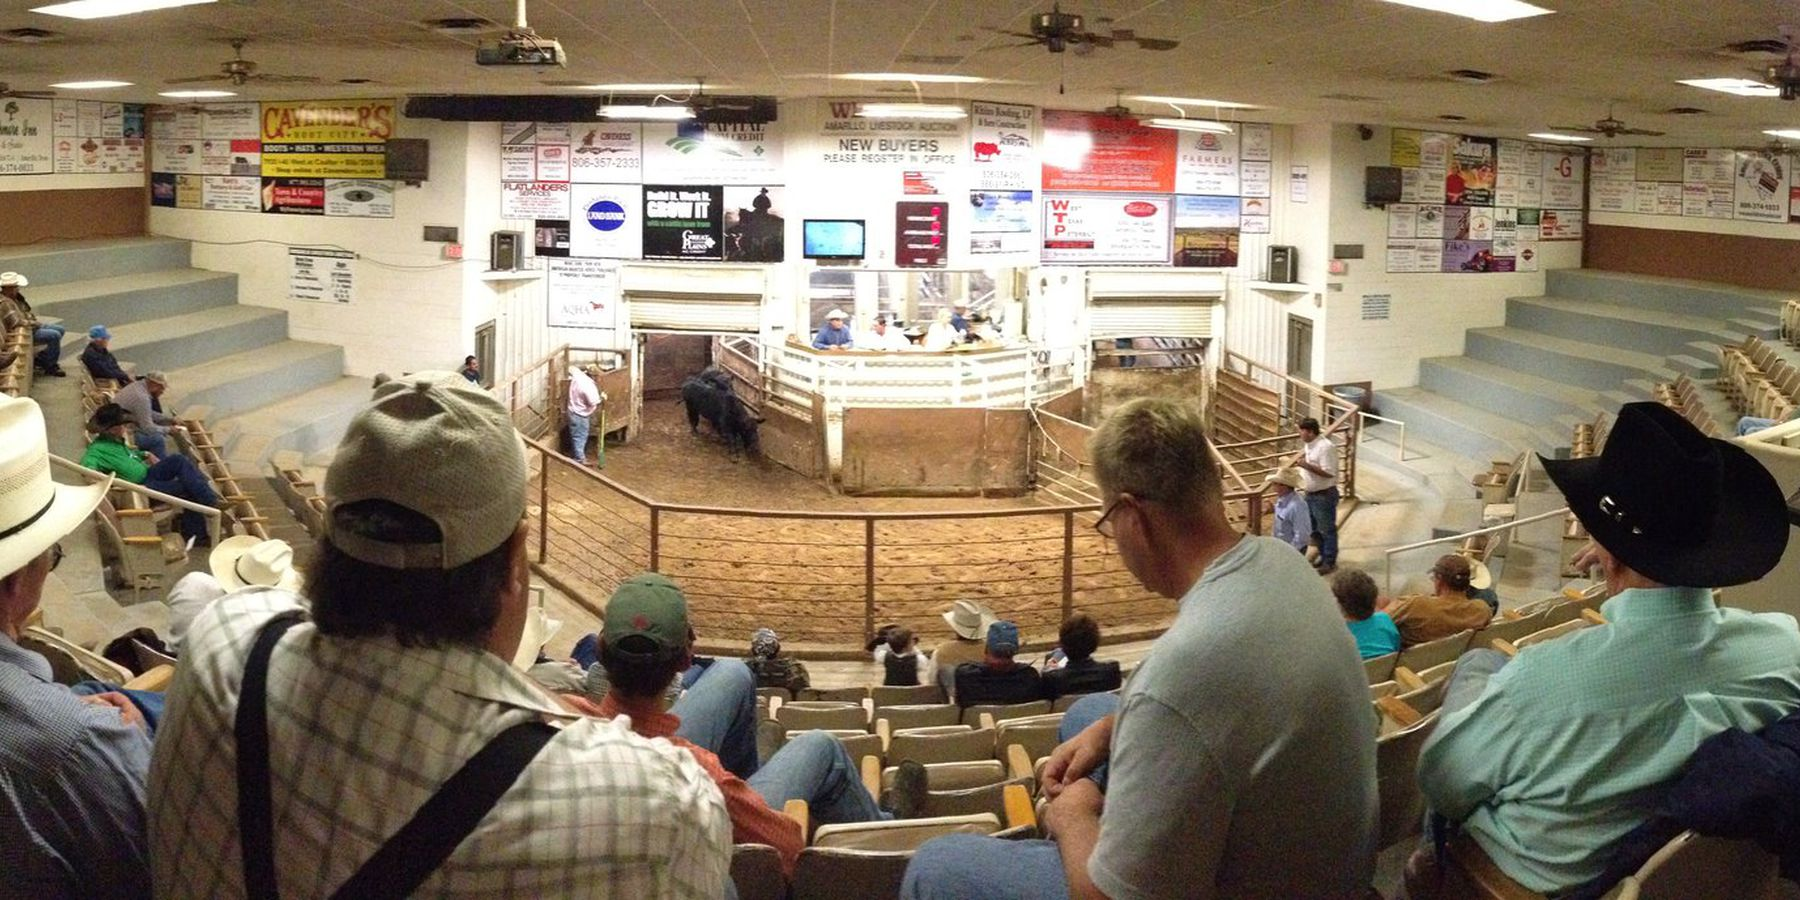 Amarillo Livestock Auction - Route 66 - Texas - Doets Reizen